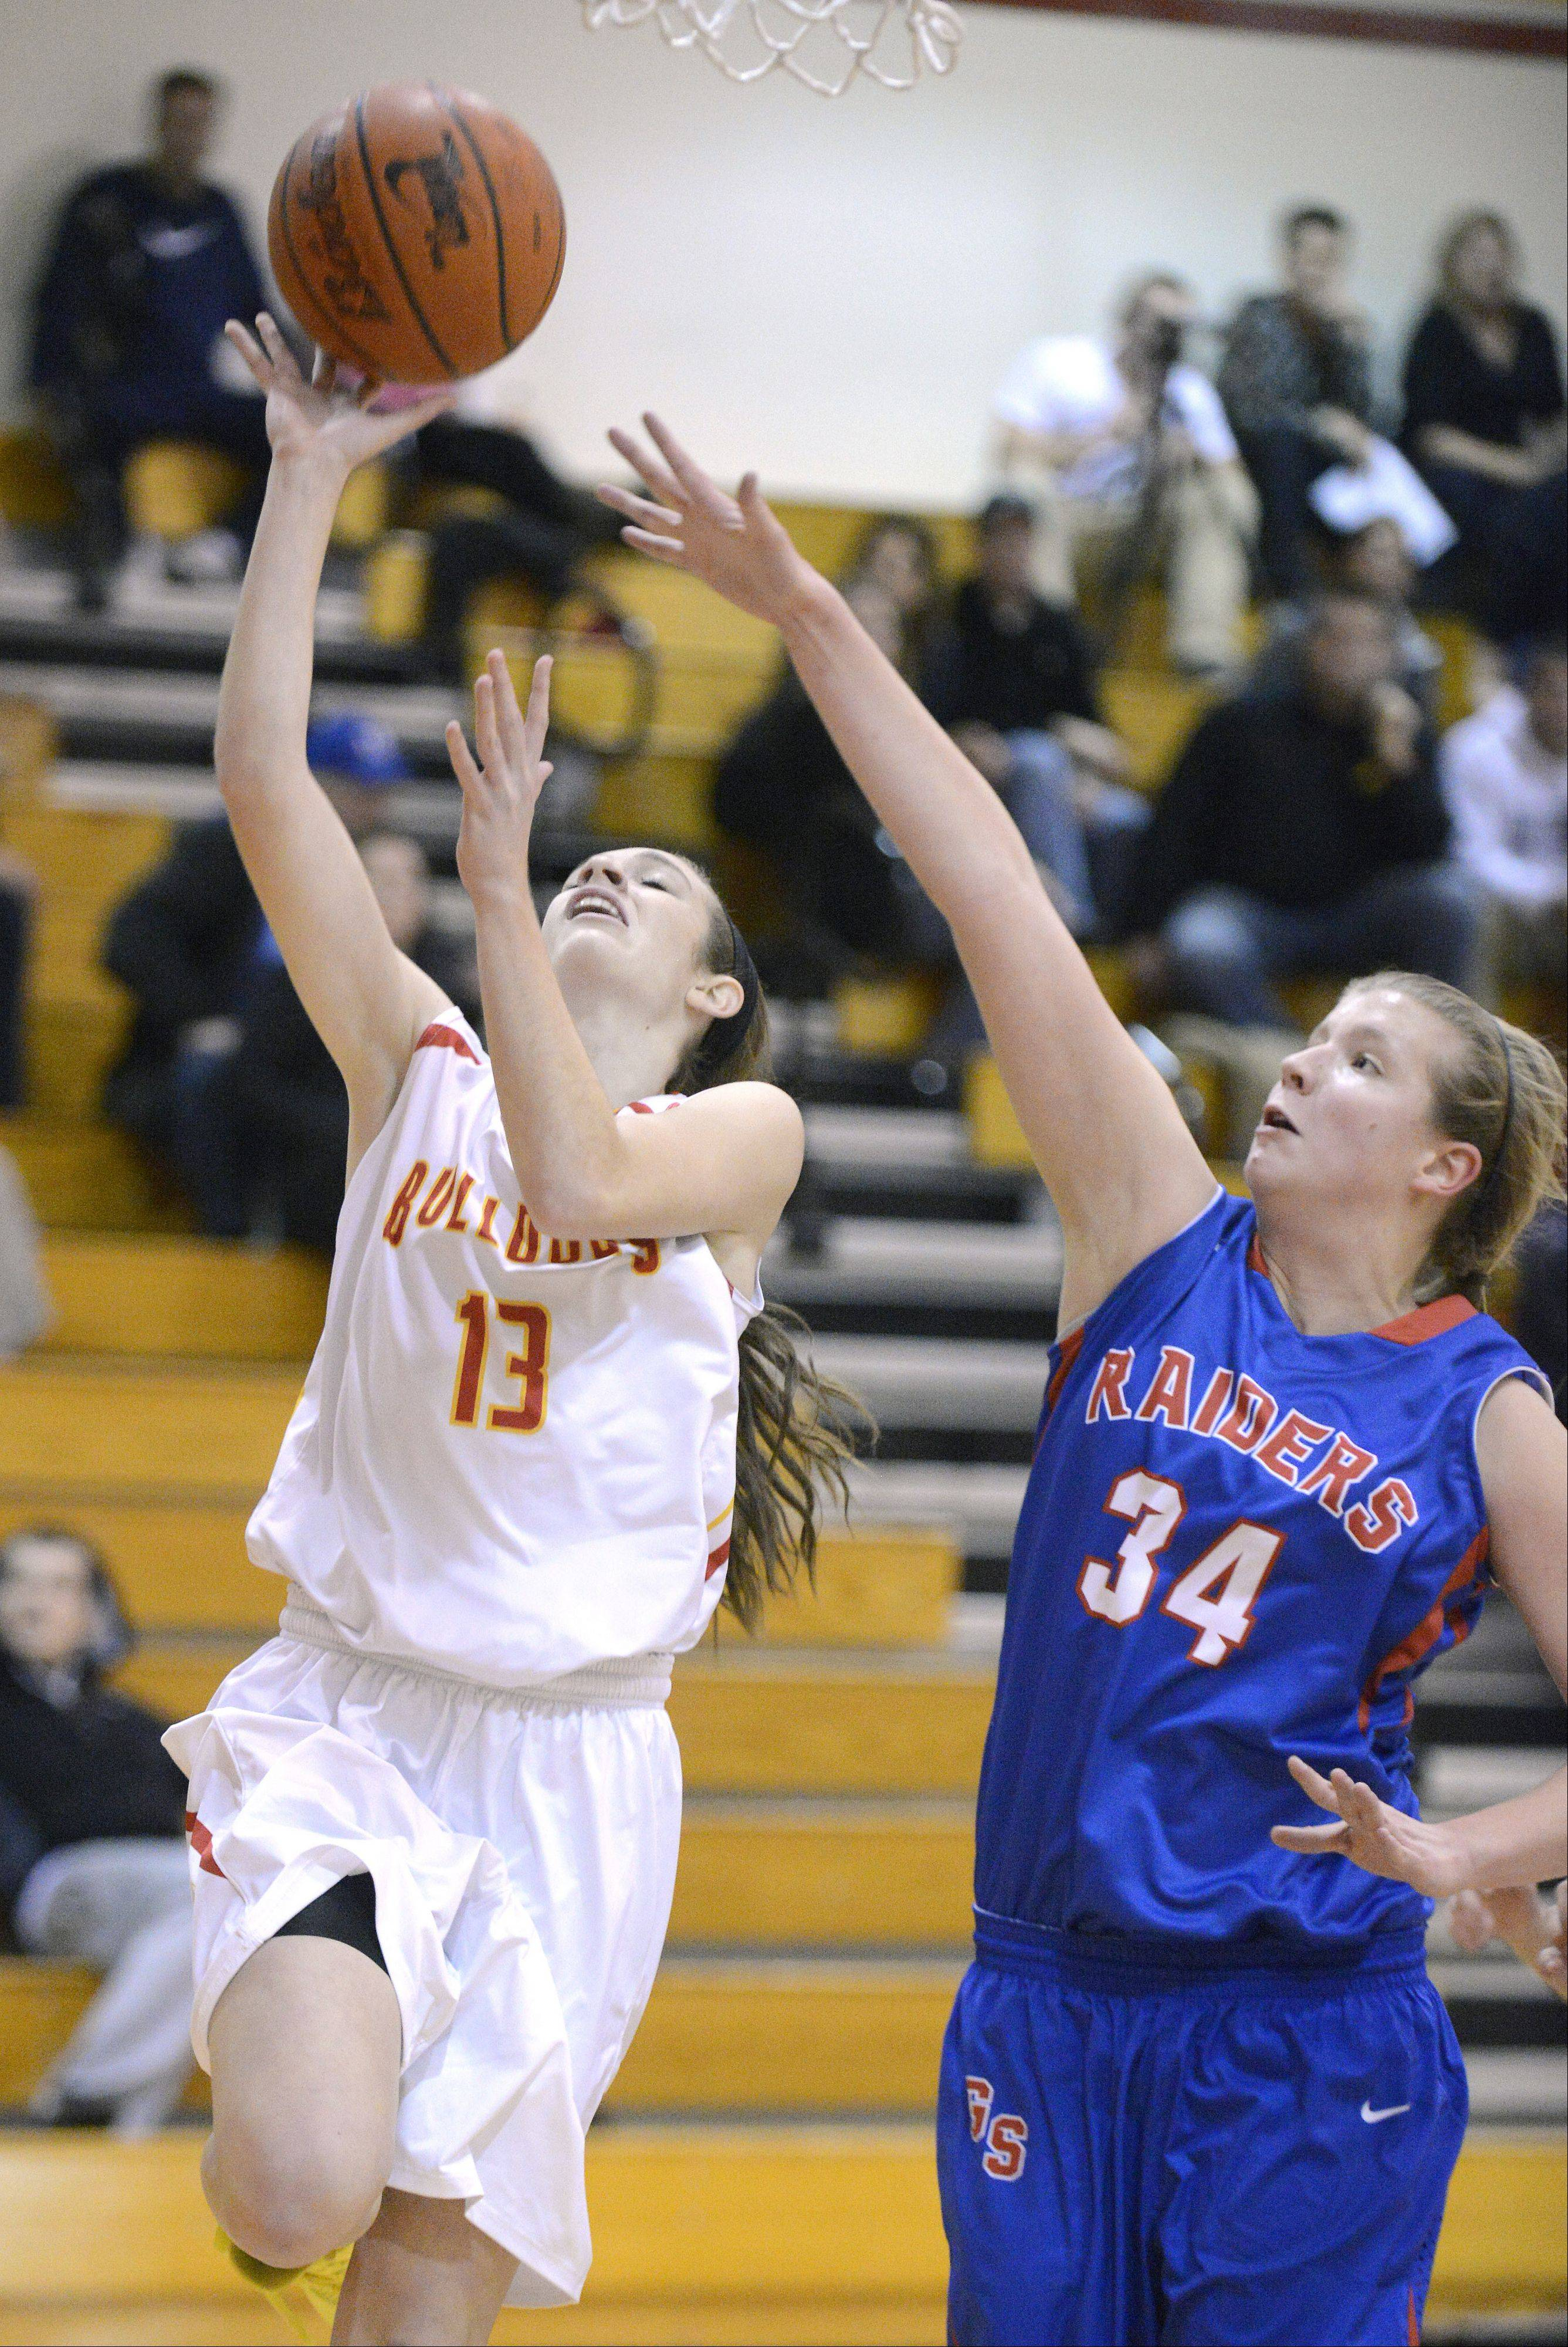 Glenbard South's Sydney Bauman attempts to tip the ball out of the hands of Batavia's Mackenzie Foster as she goes up for the hoop in the first quarter on Tuesday, November 19.